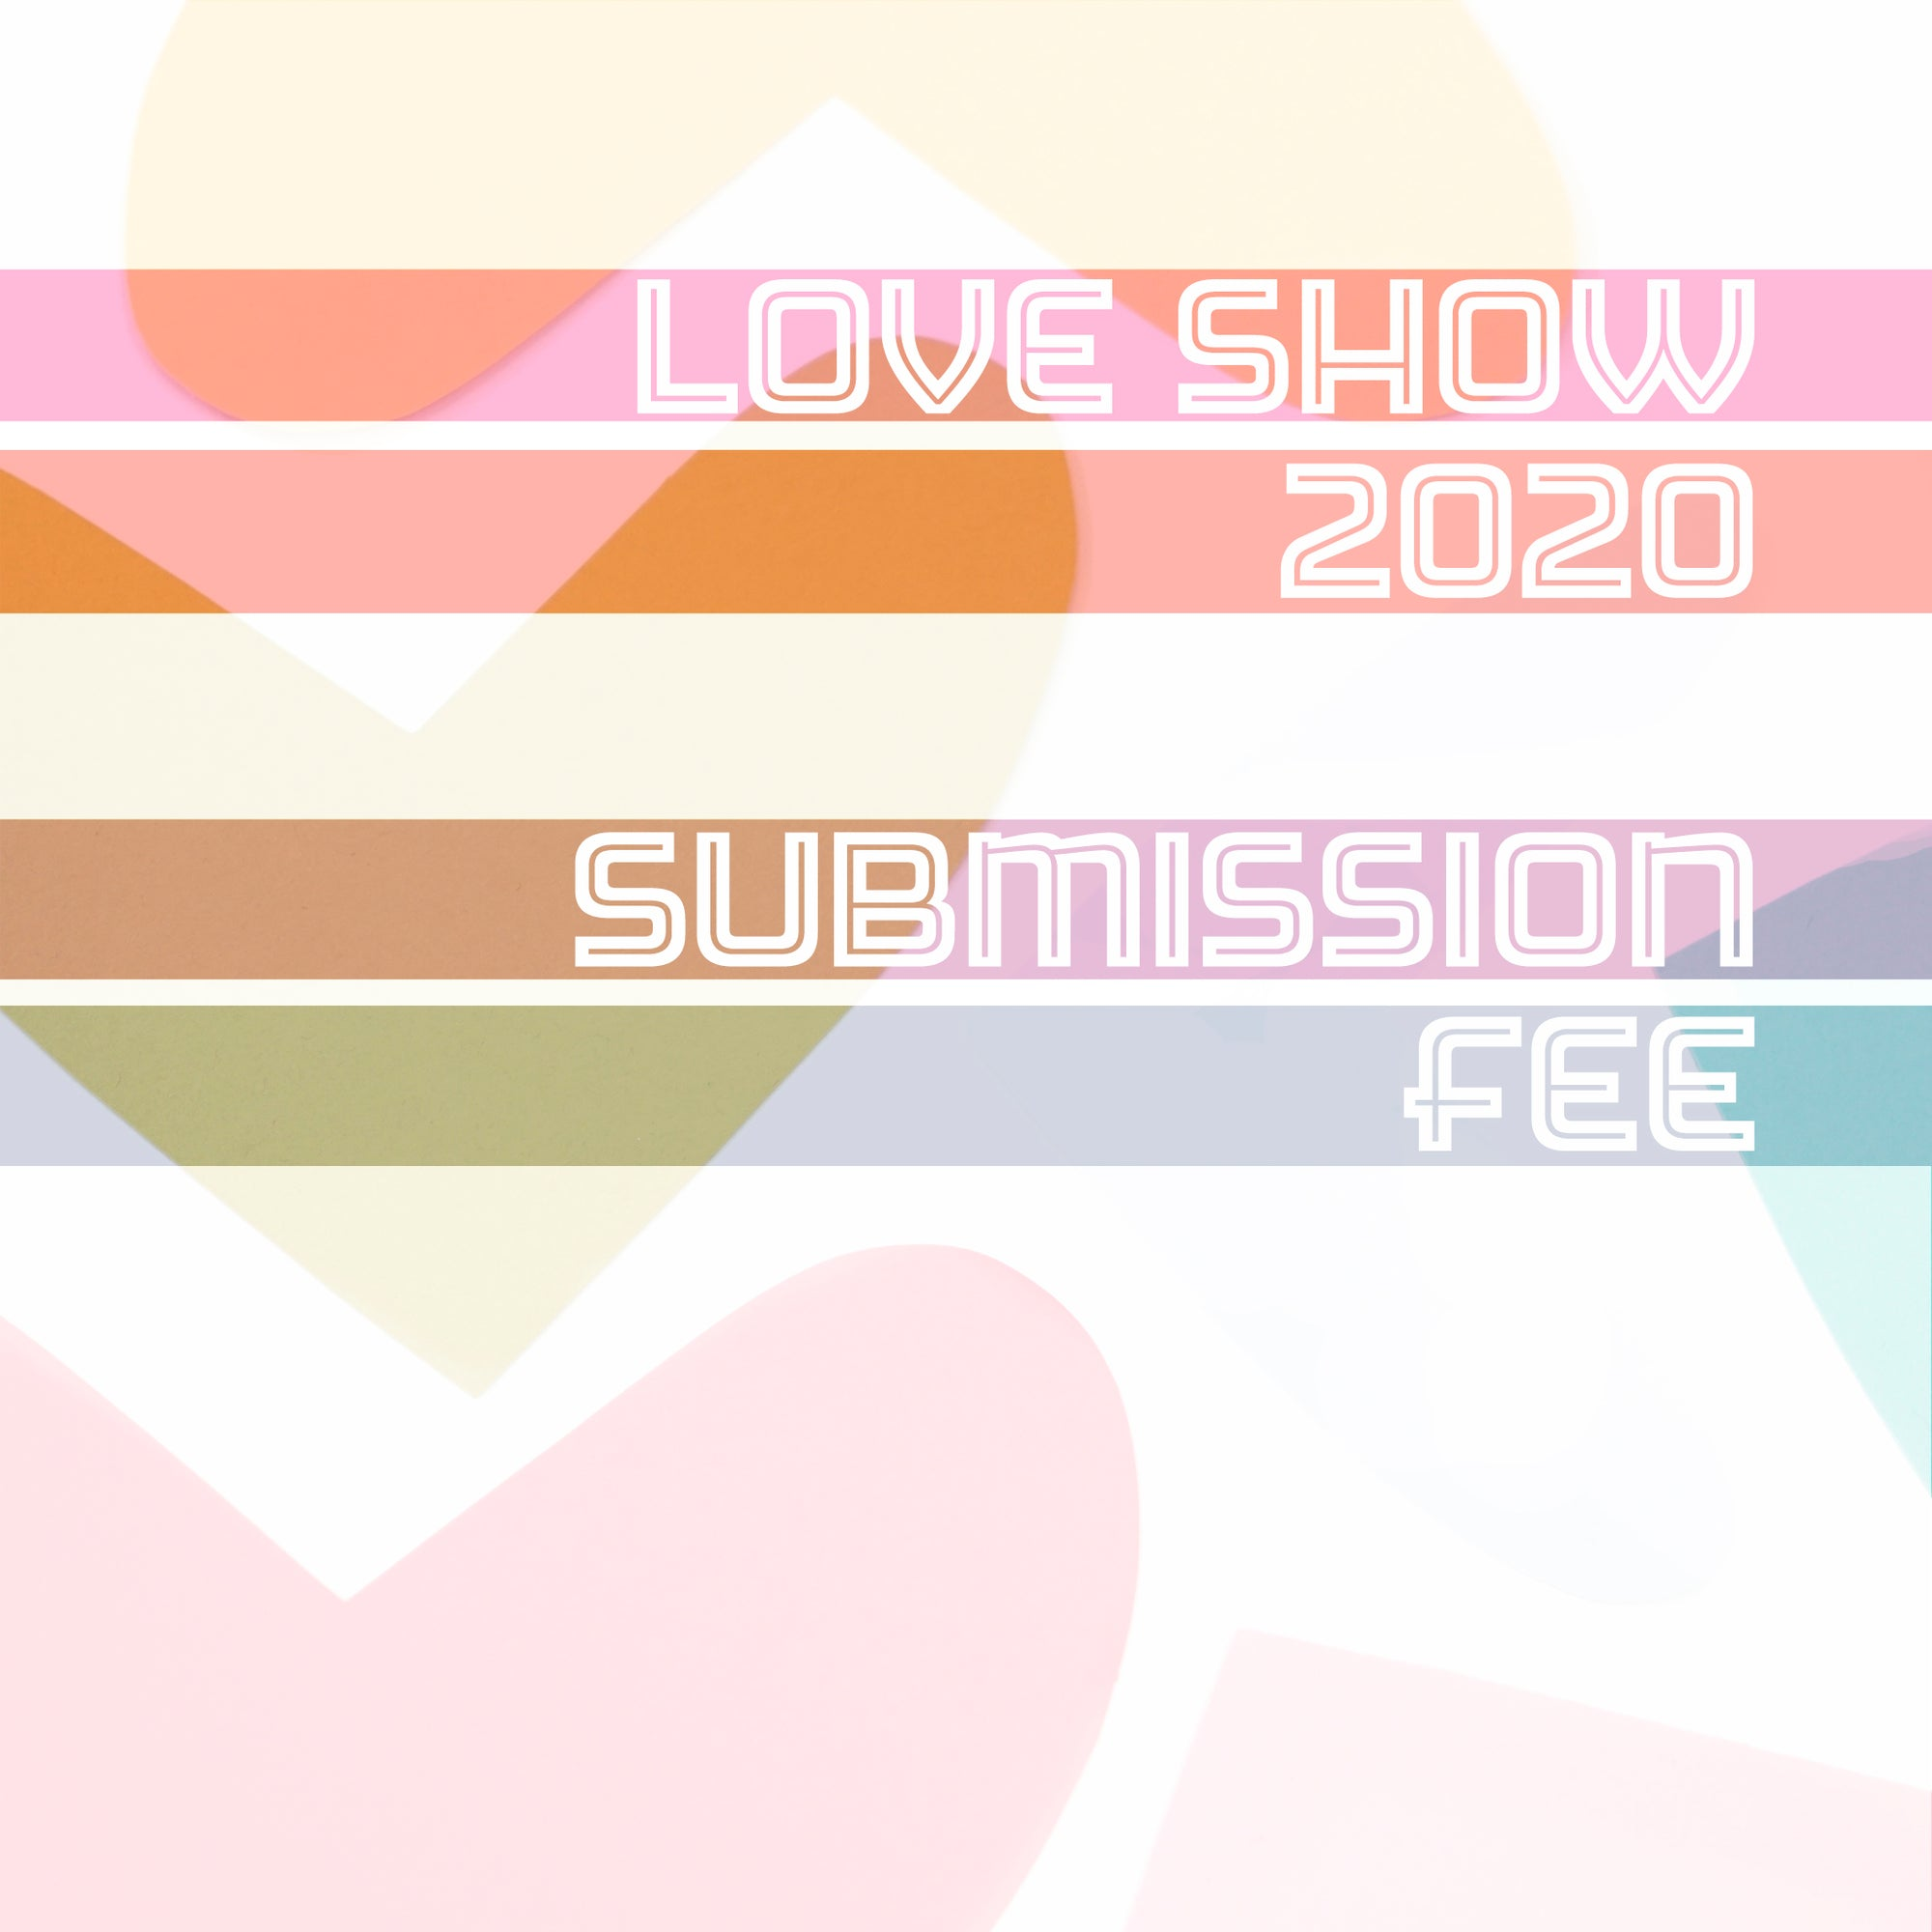 Gallery Submission Fee - Love Show 2020